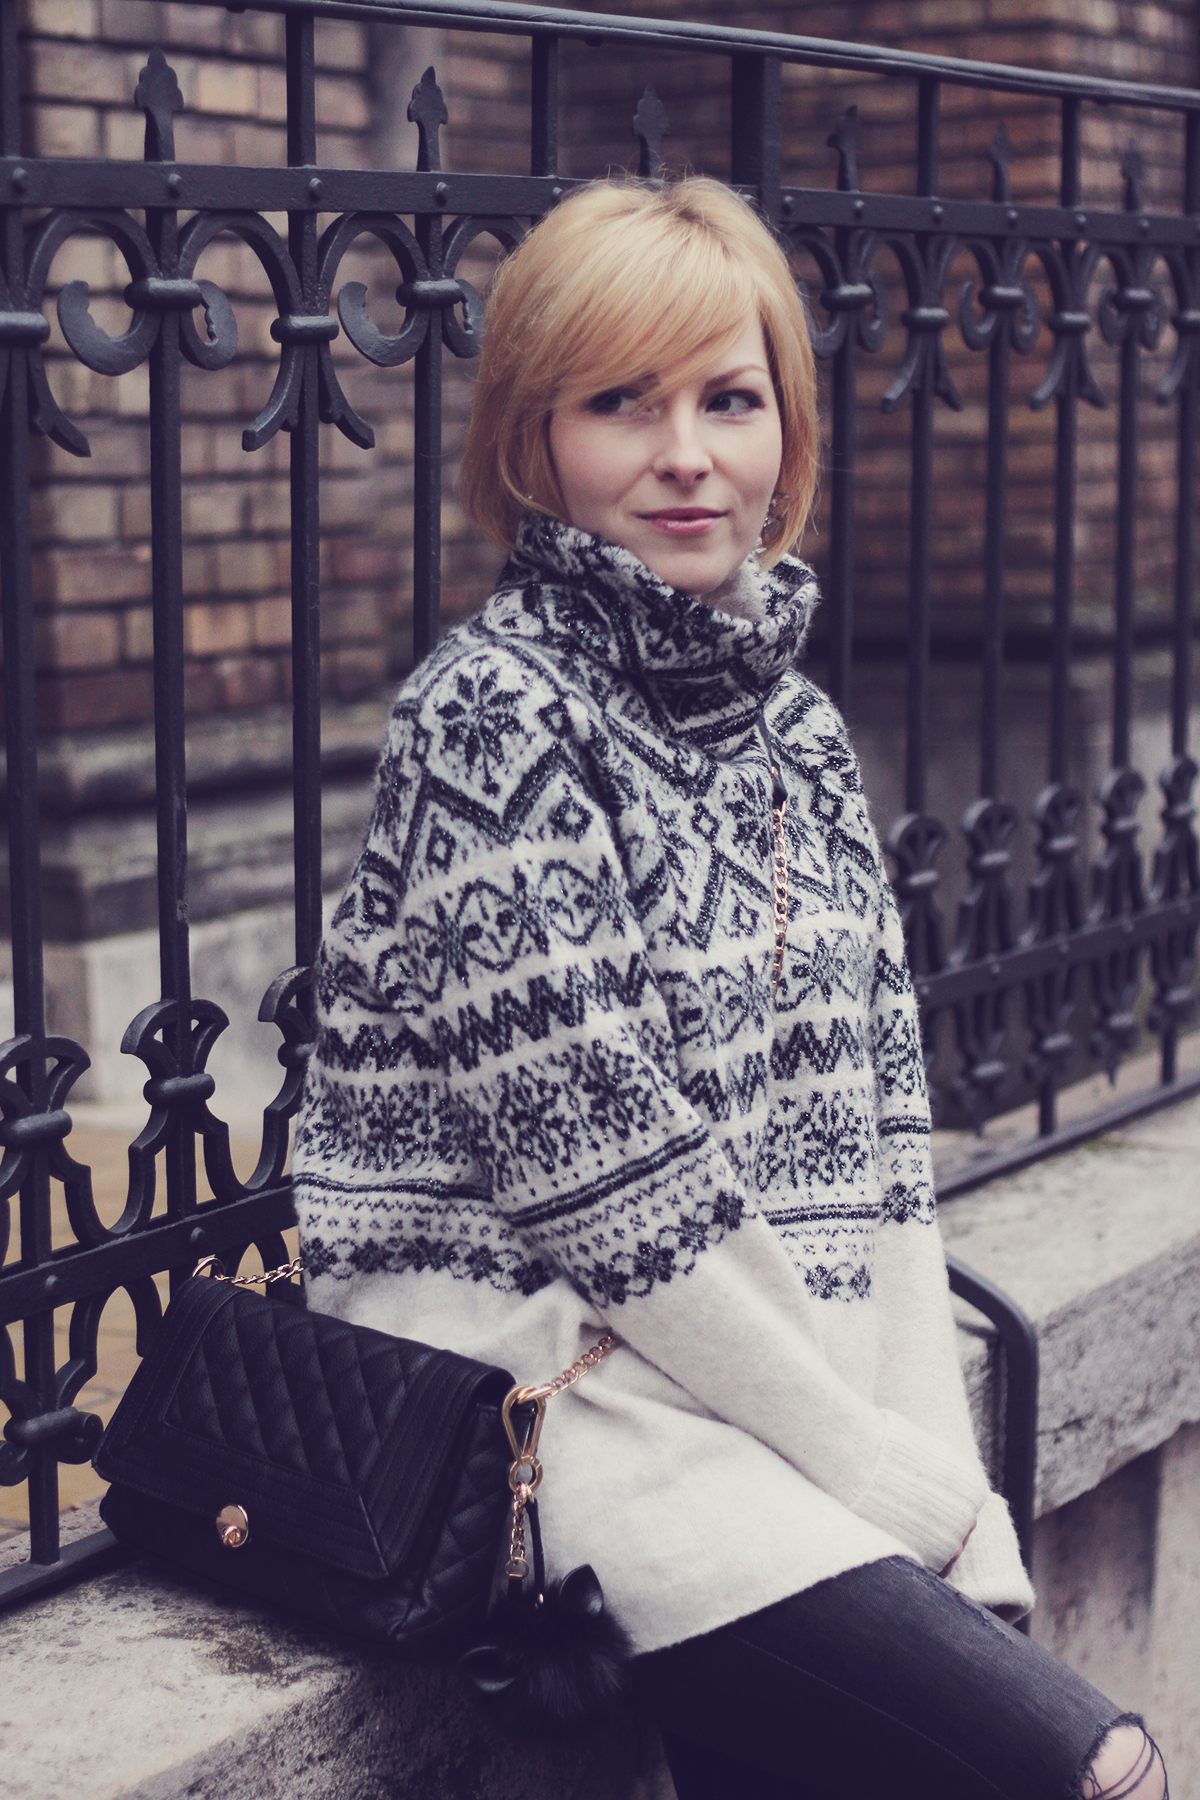 christmas winter jumper and black purse with pom-pom